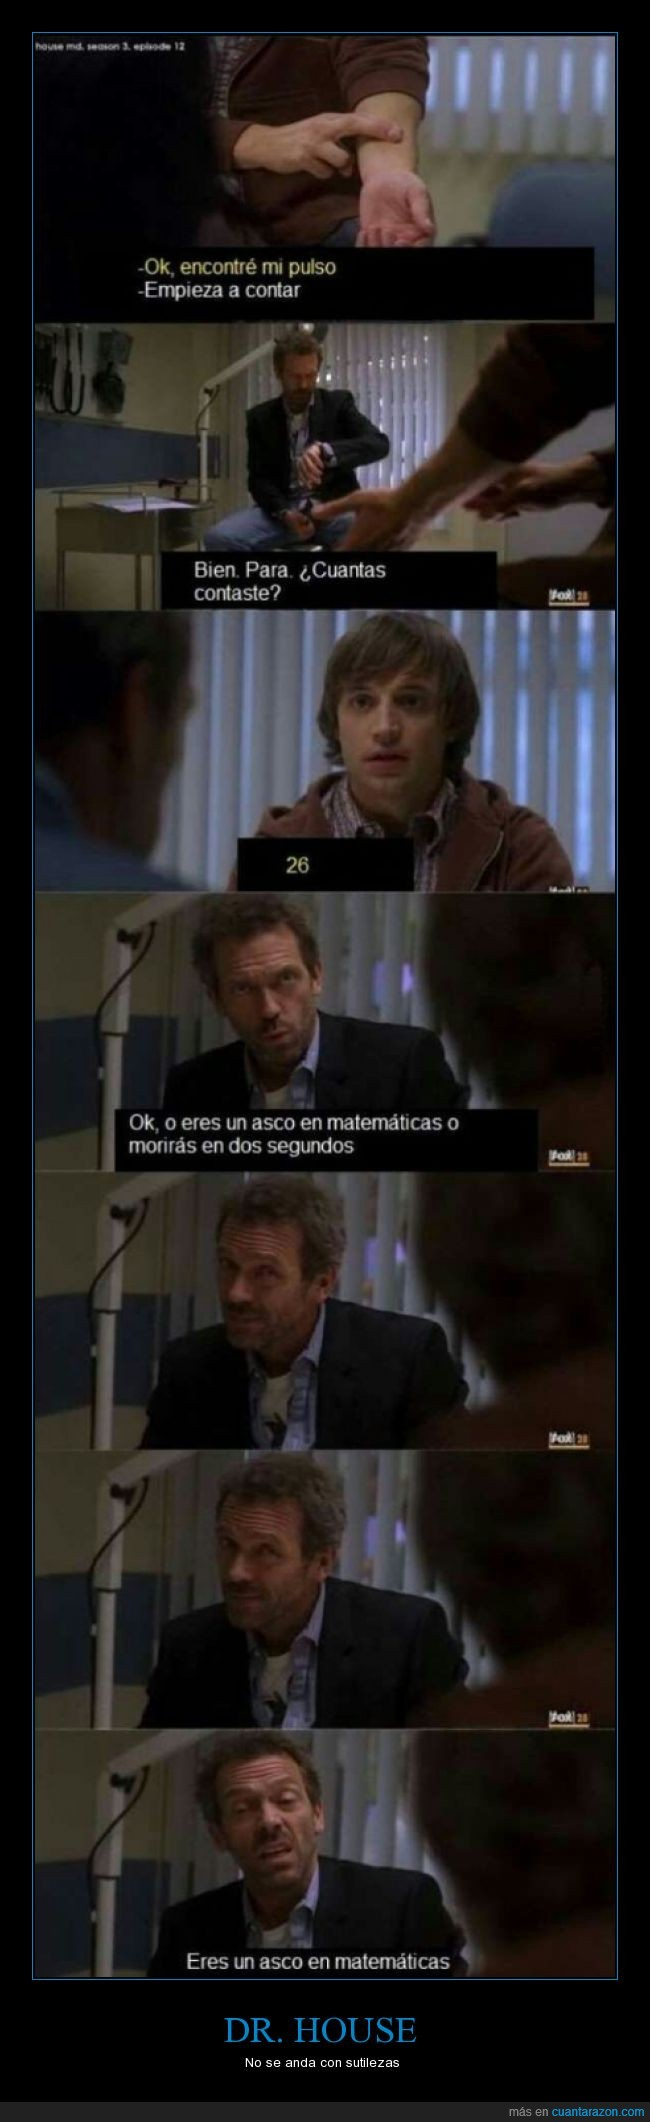 contar,doctor,Dr house,House,malo,matematicas